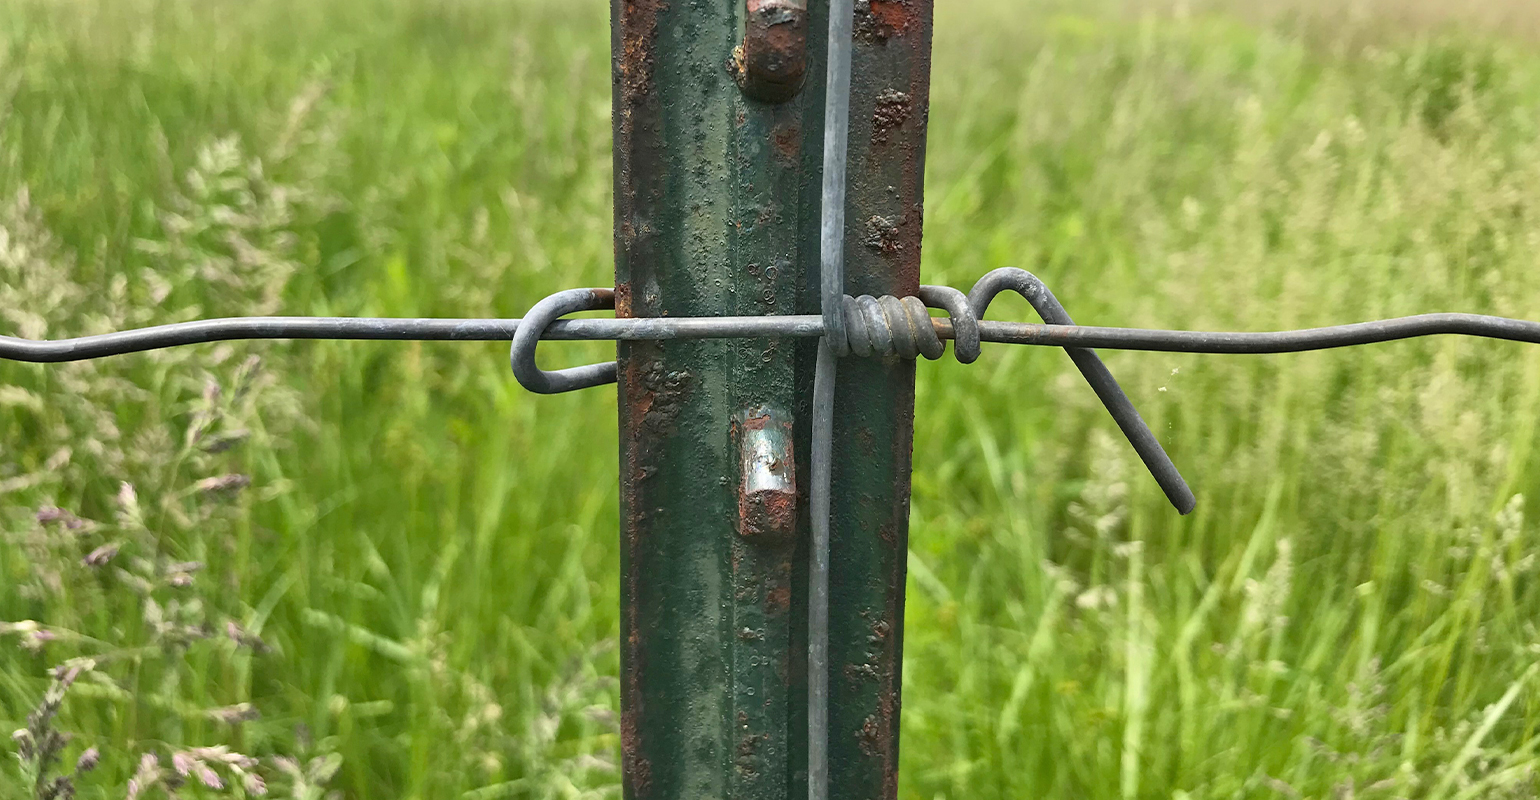 wire clip wrapped to secure fence